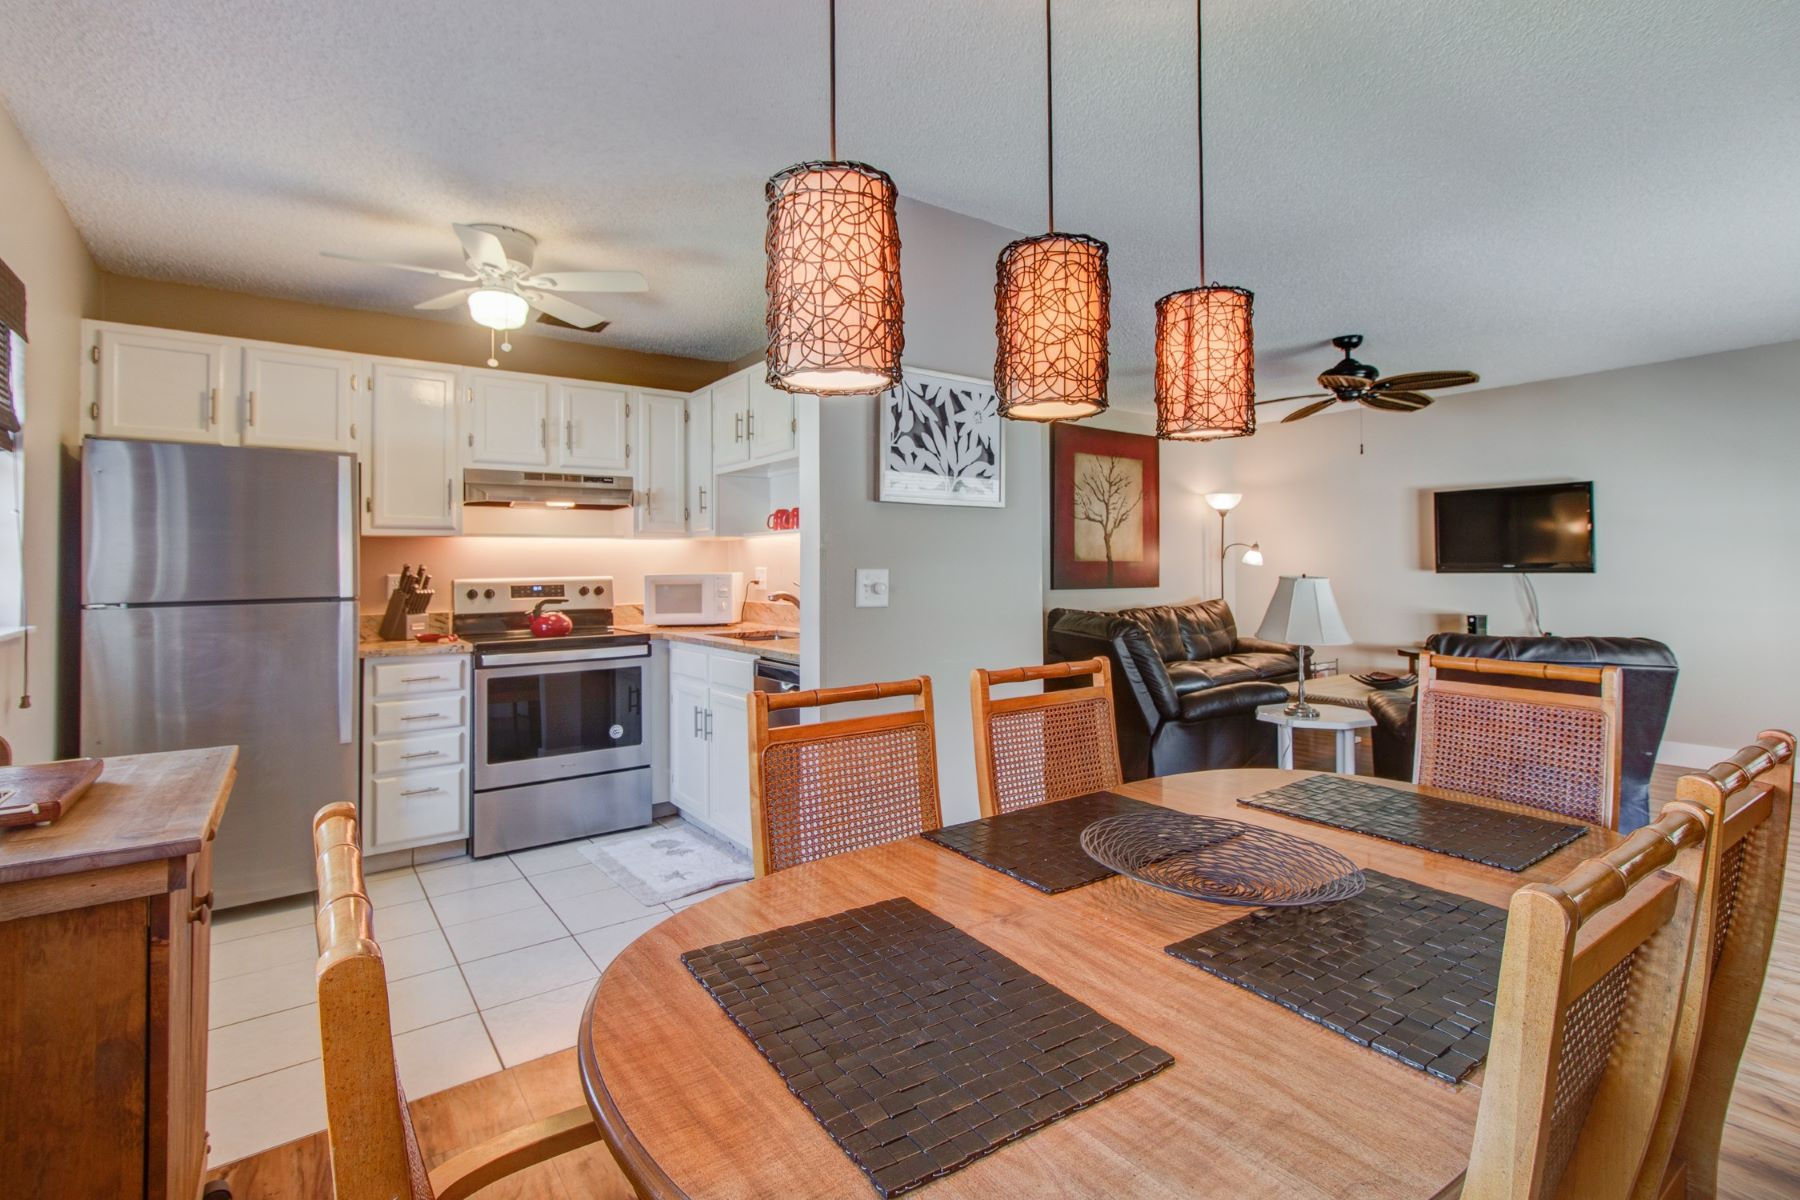 Two Bedroom Remodeled Home with Preserve View 52 Woodland Drive 202 Vero Beach, Floride 32962 États-Unis